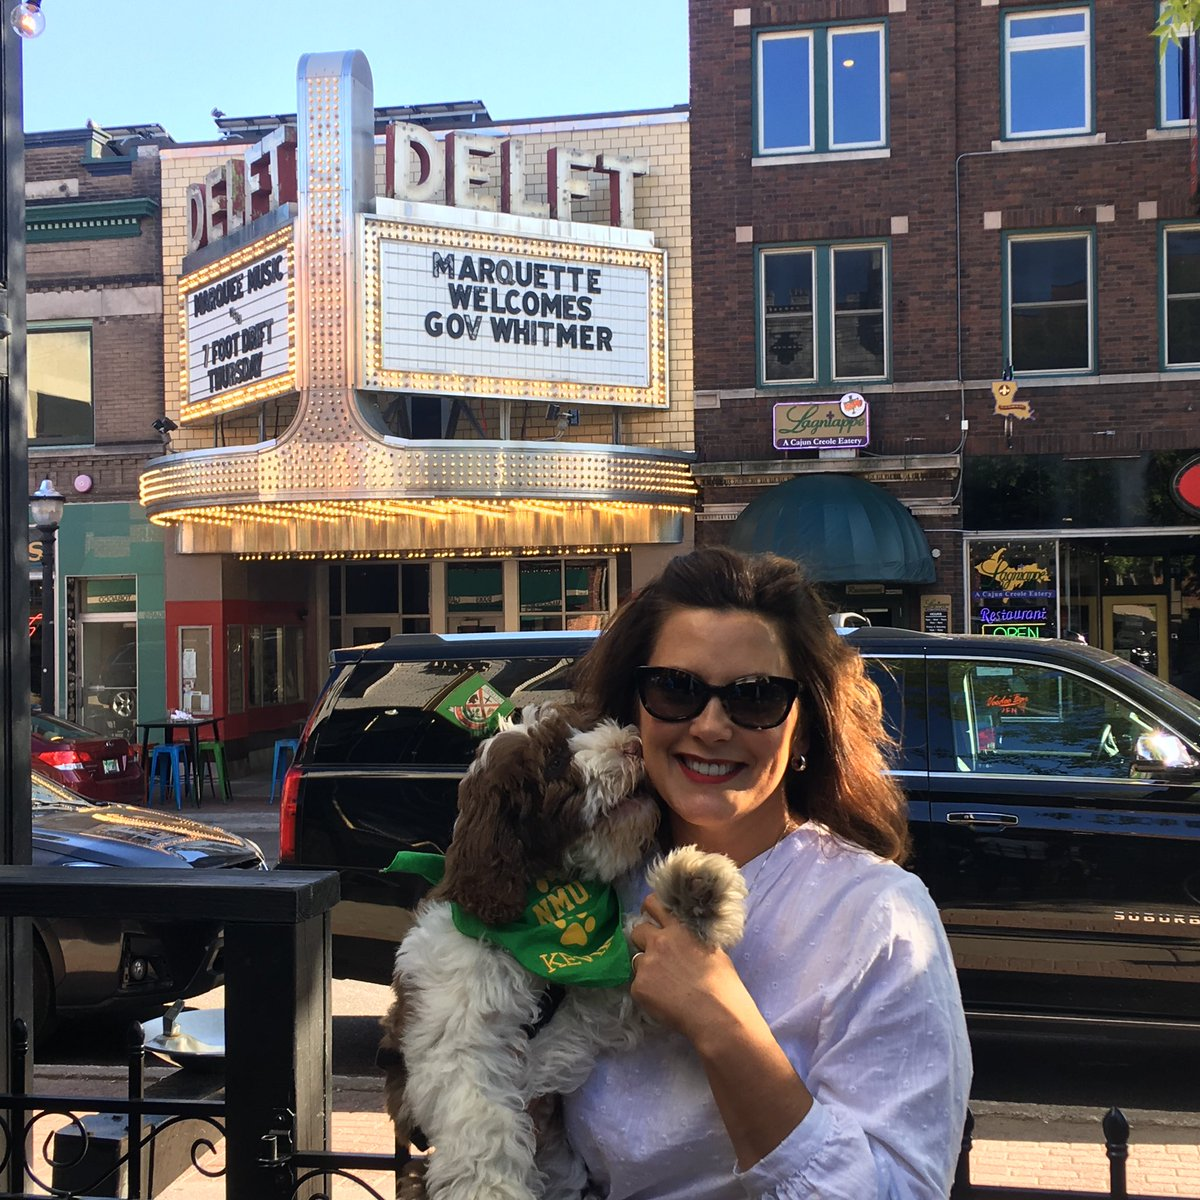 Governor Gretchen Whitmer On Twitter Kevin And I Thank You For The Warm Welcome